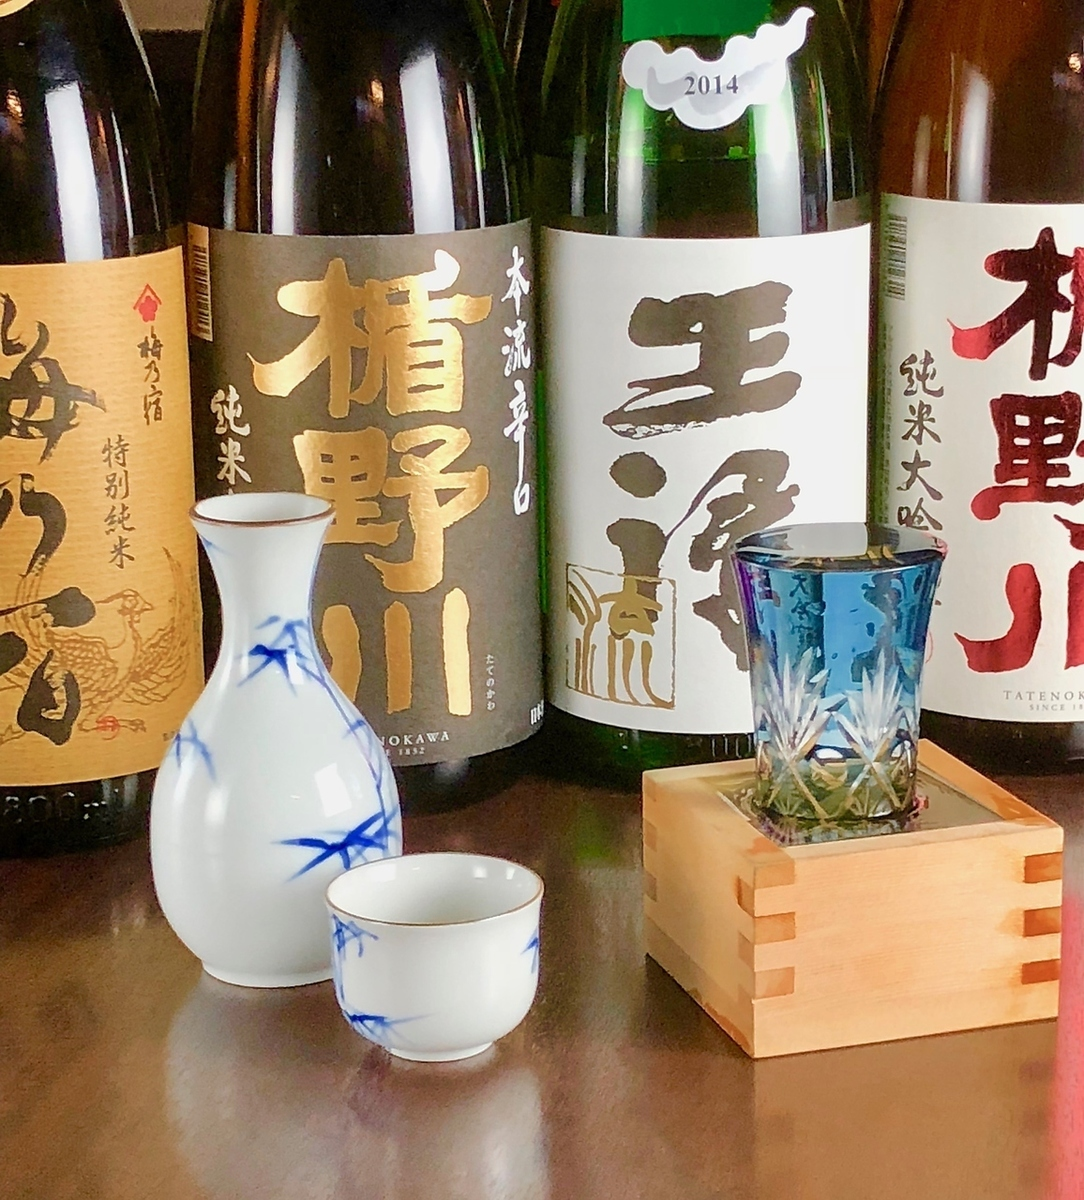 We have local sake that matches soba.